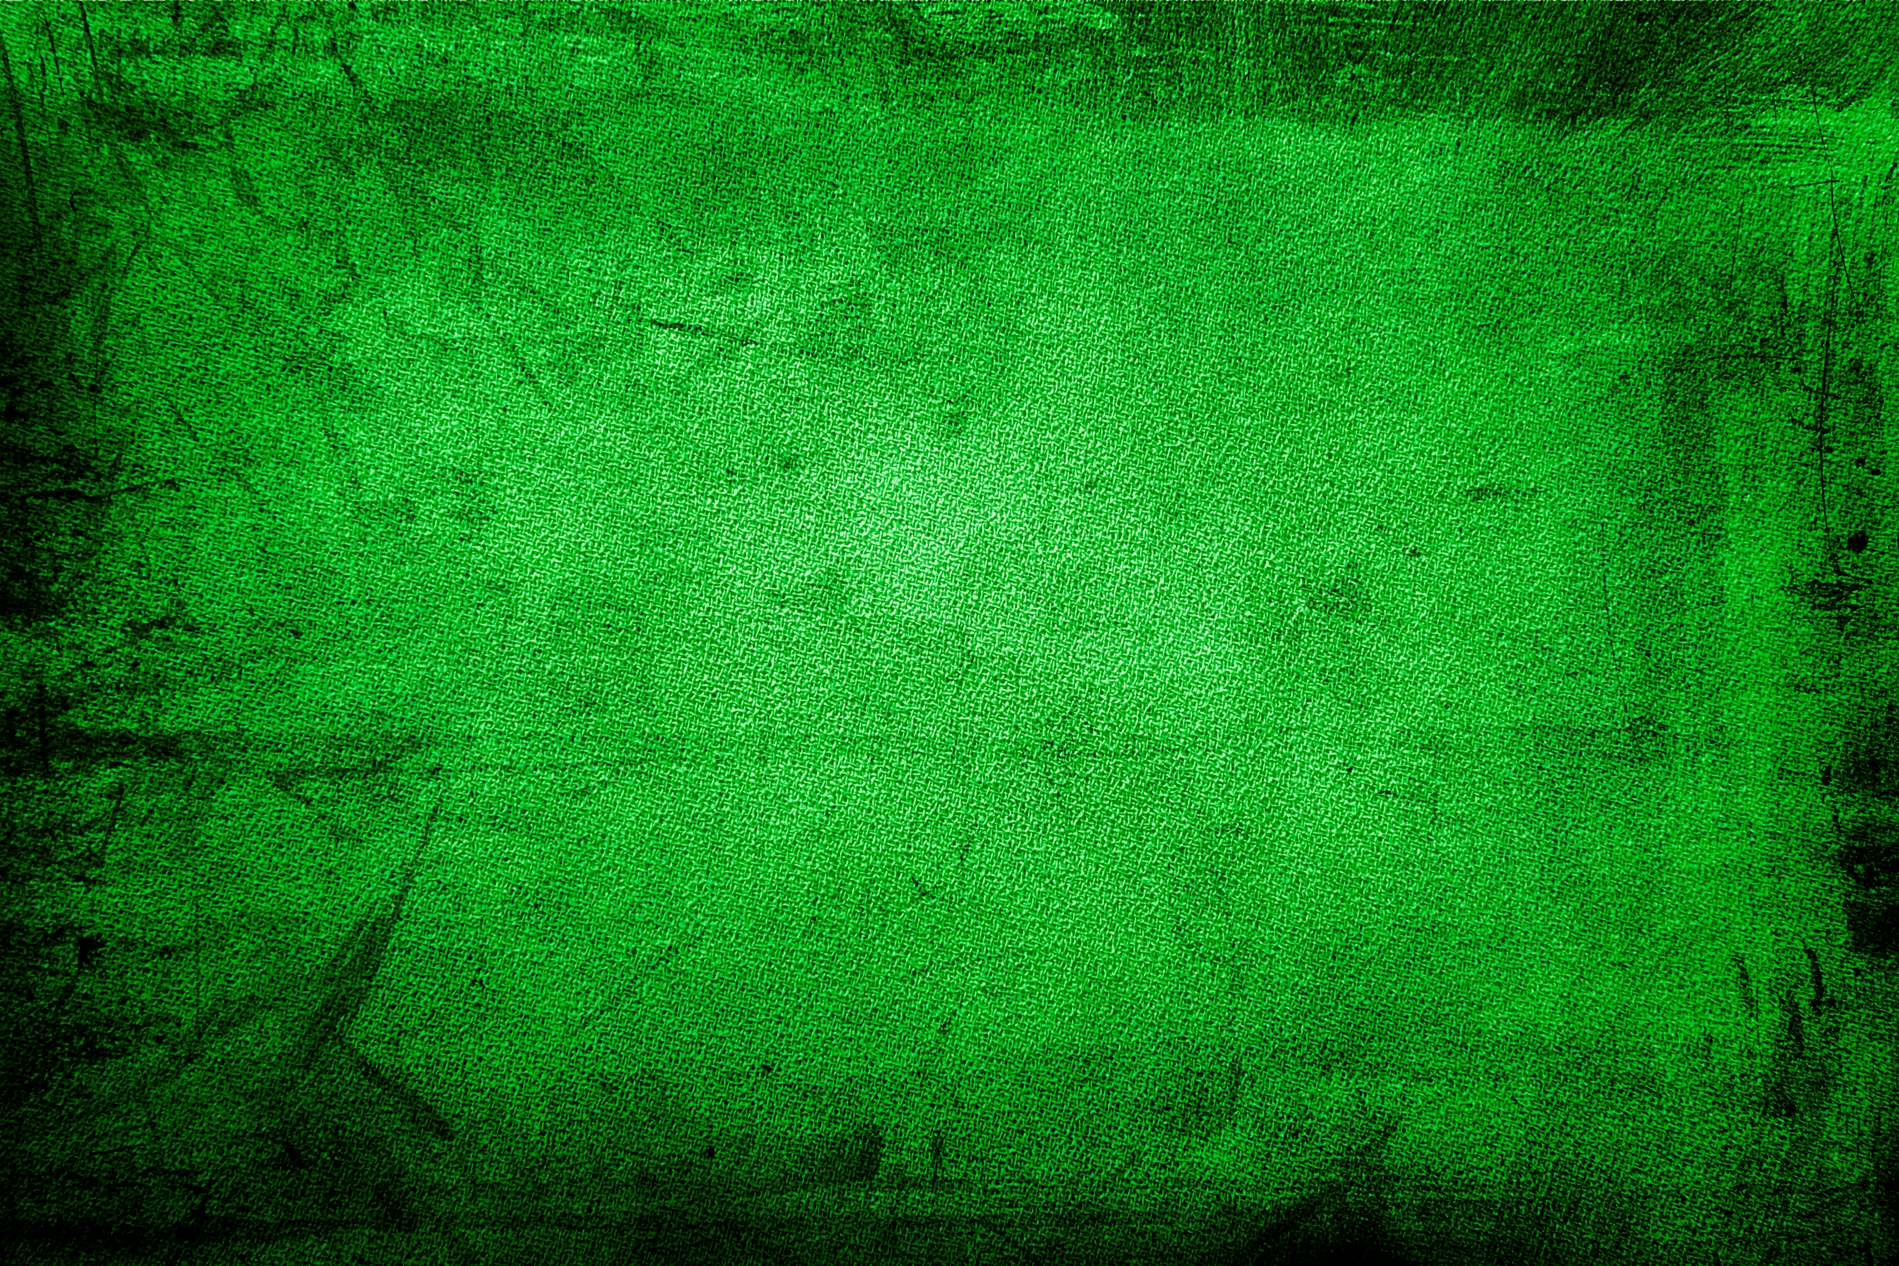 Green Grunge Fabric Texture Background - PhotoHDX